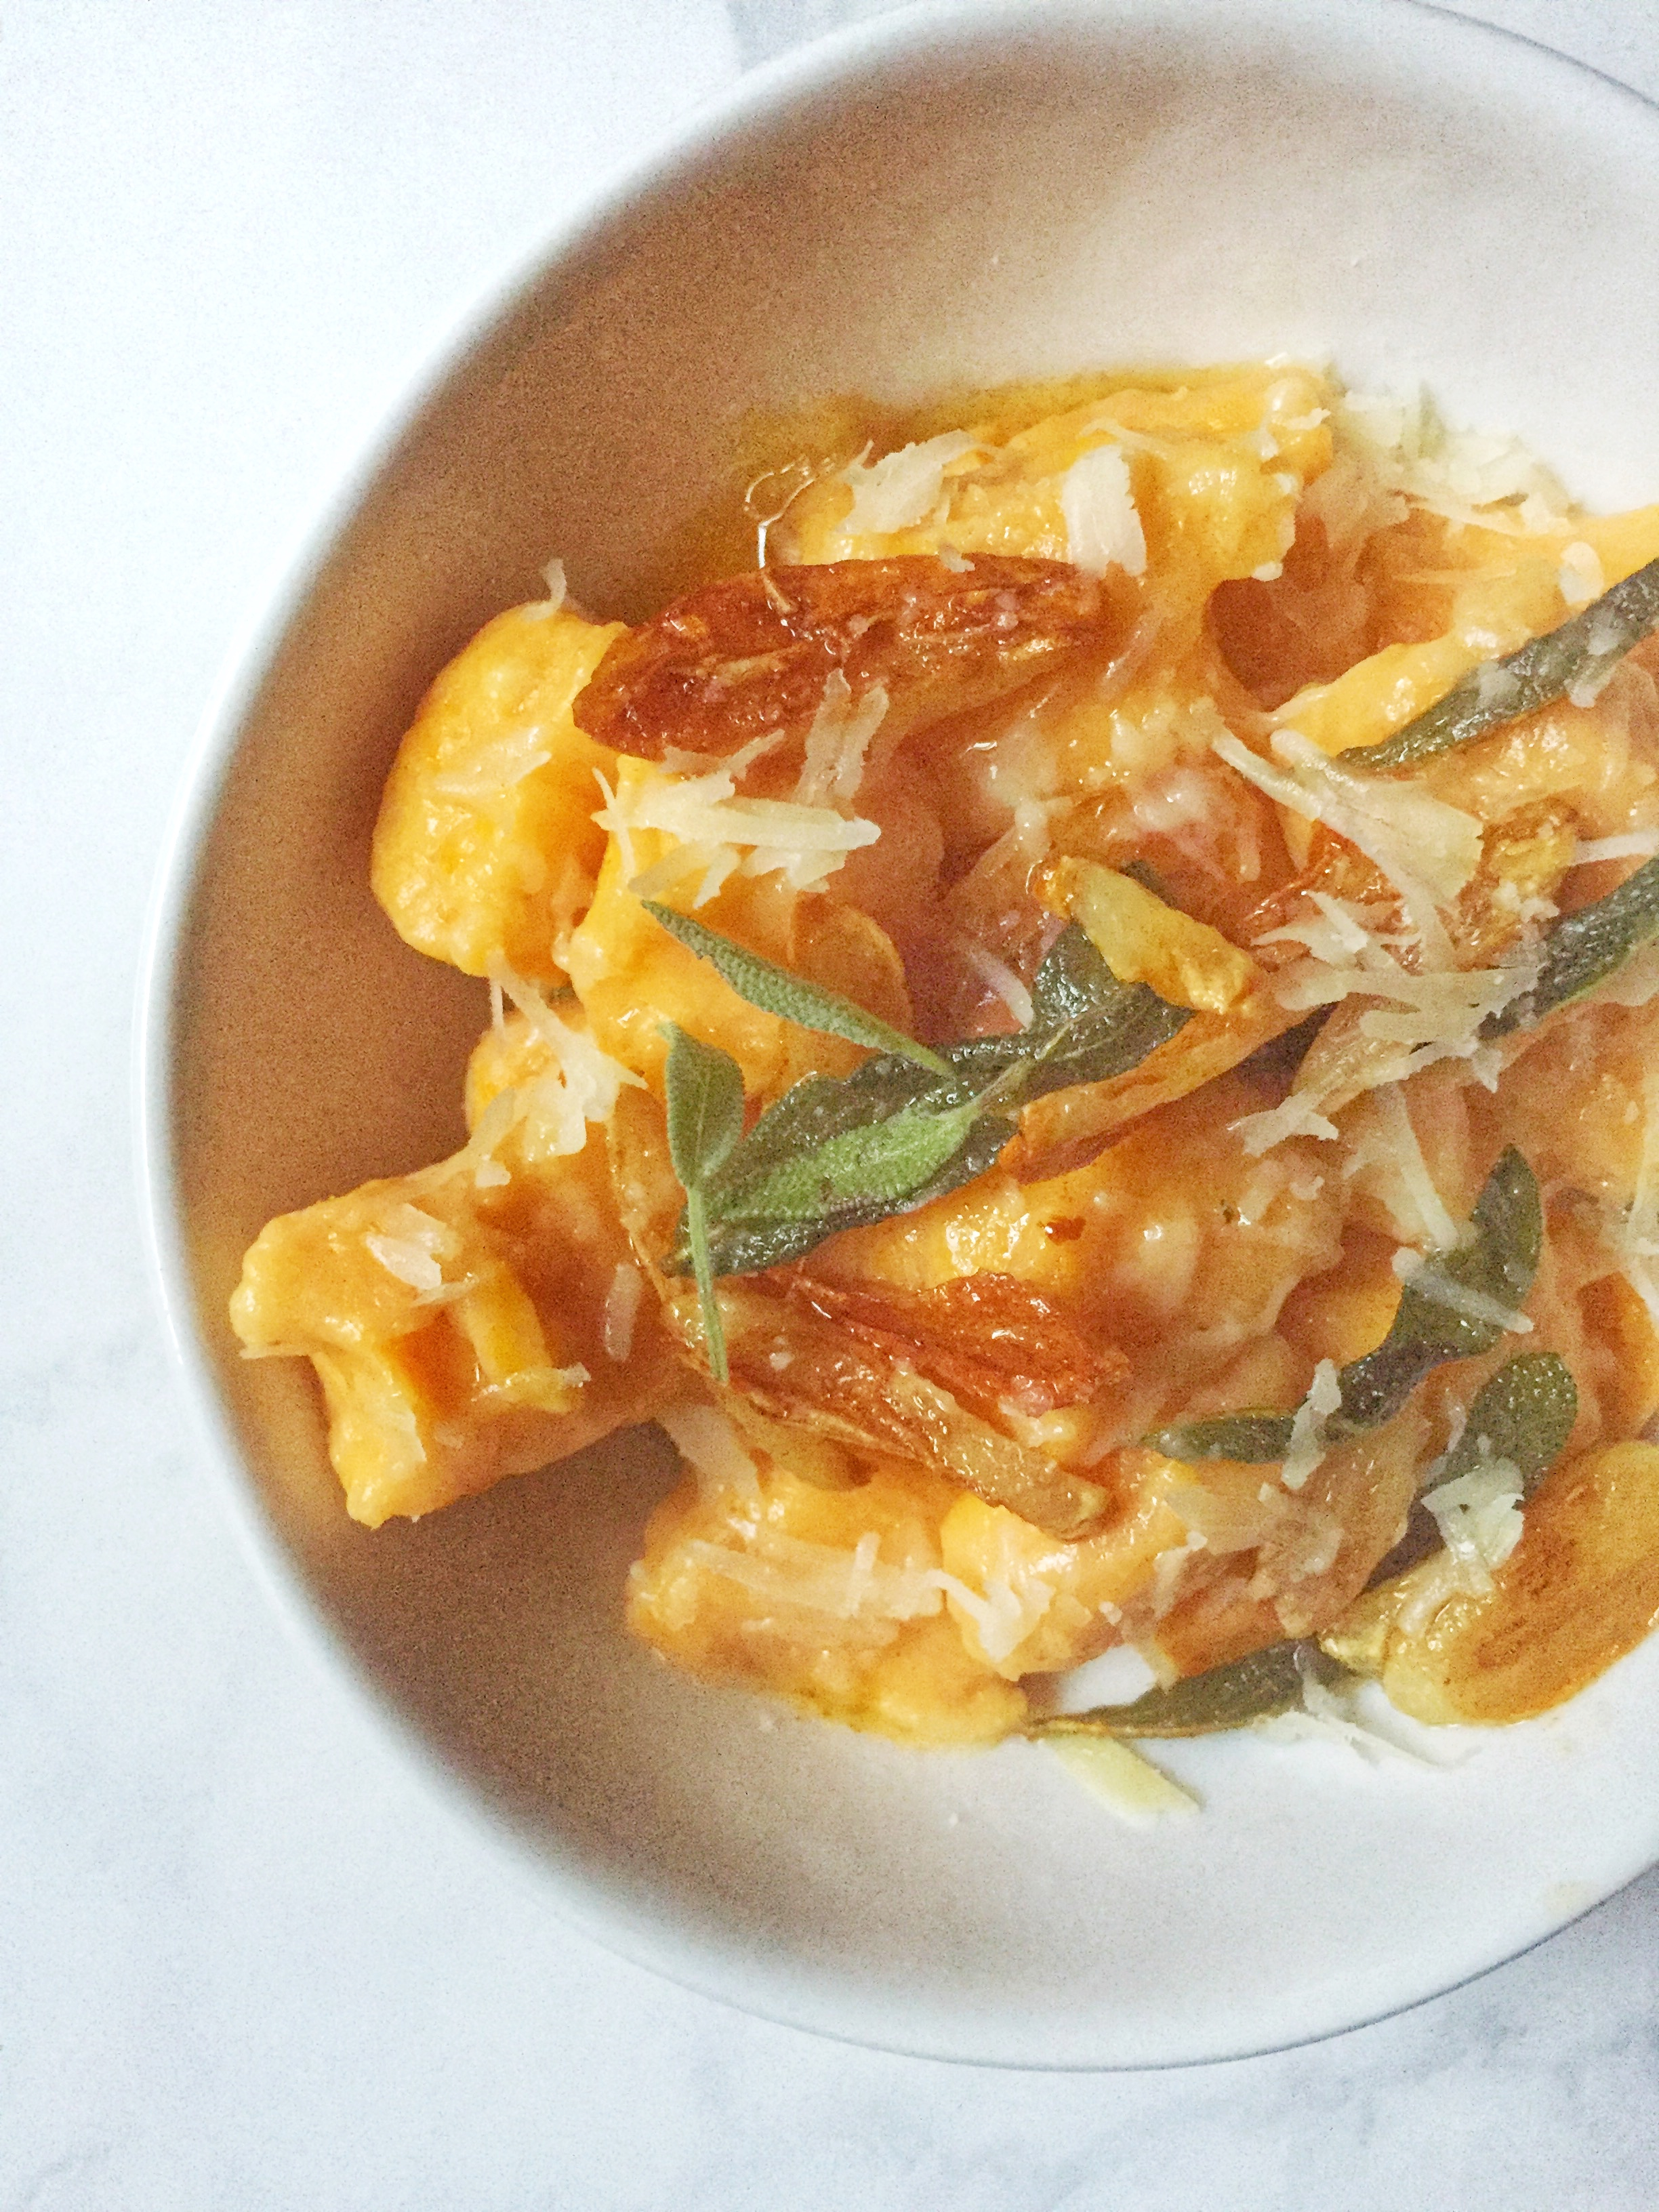 sweet potato & ricotta gnocchi with garlic & brown butter sauce garnished with parmesan cheese & crispy sage leaves